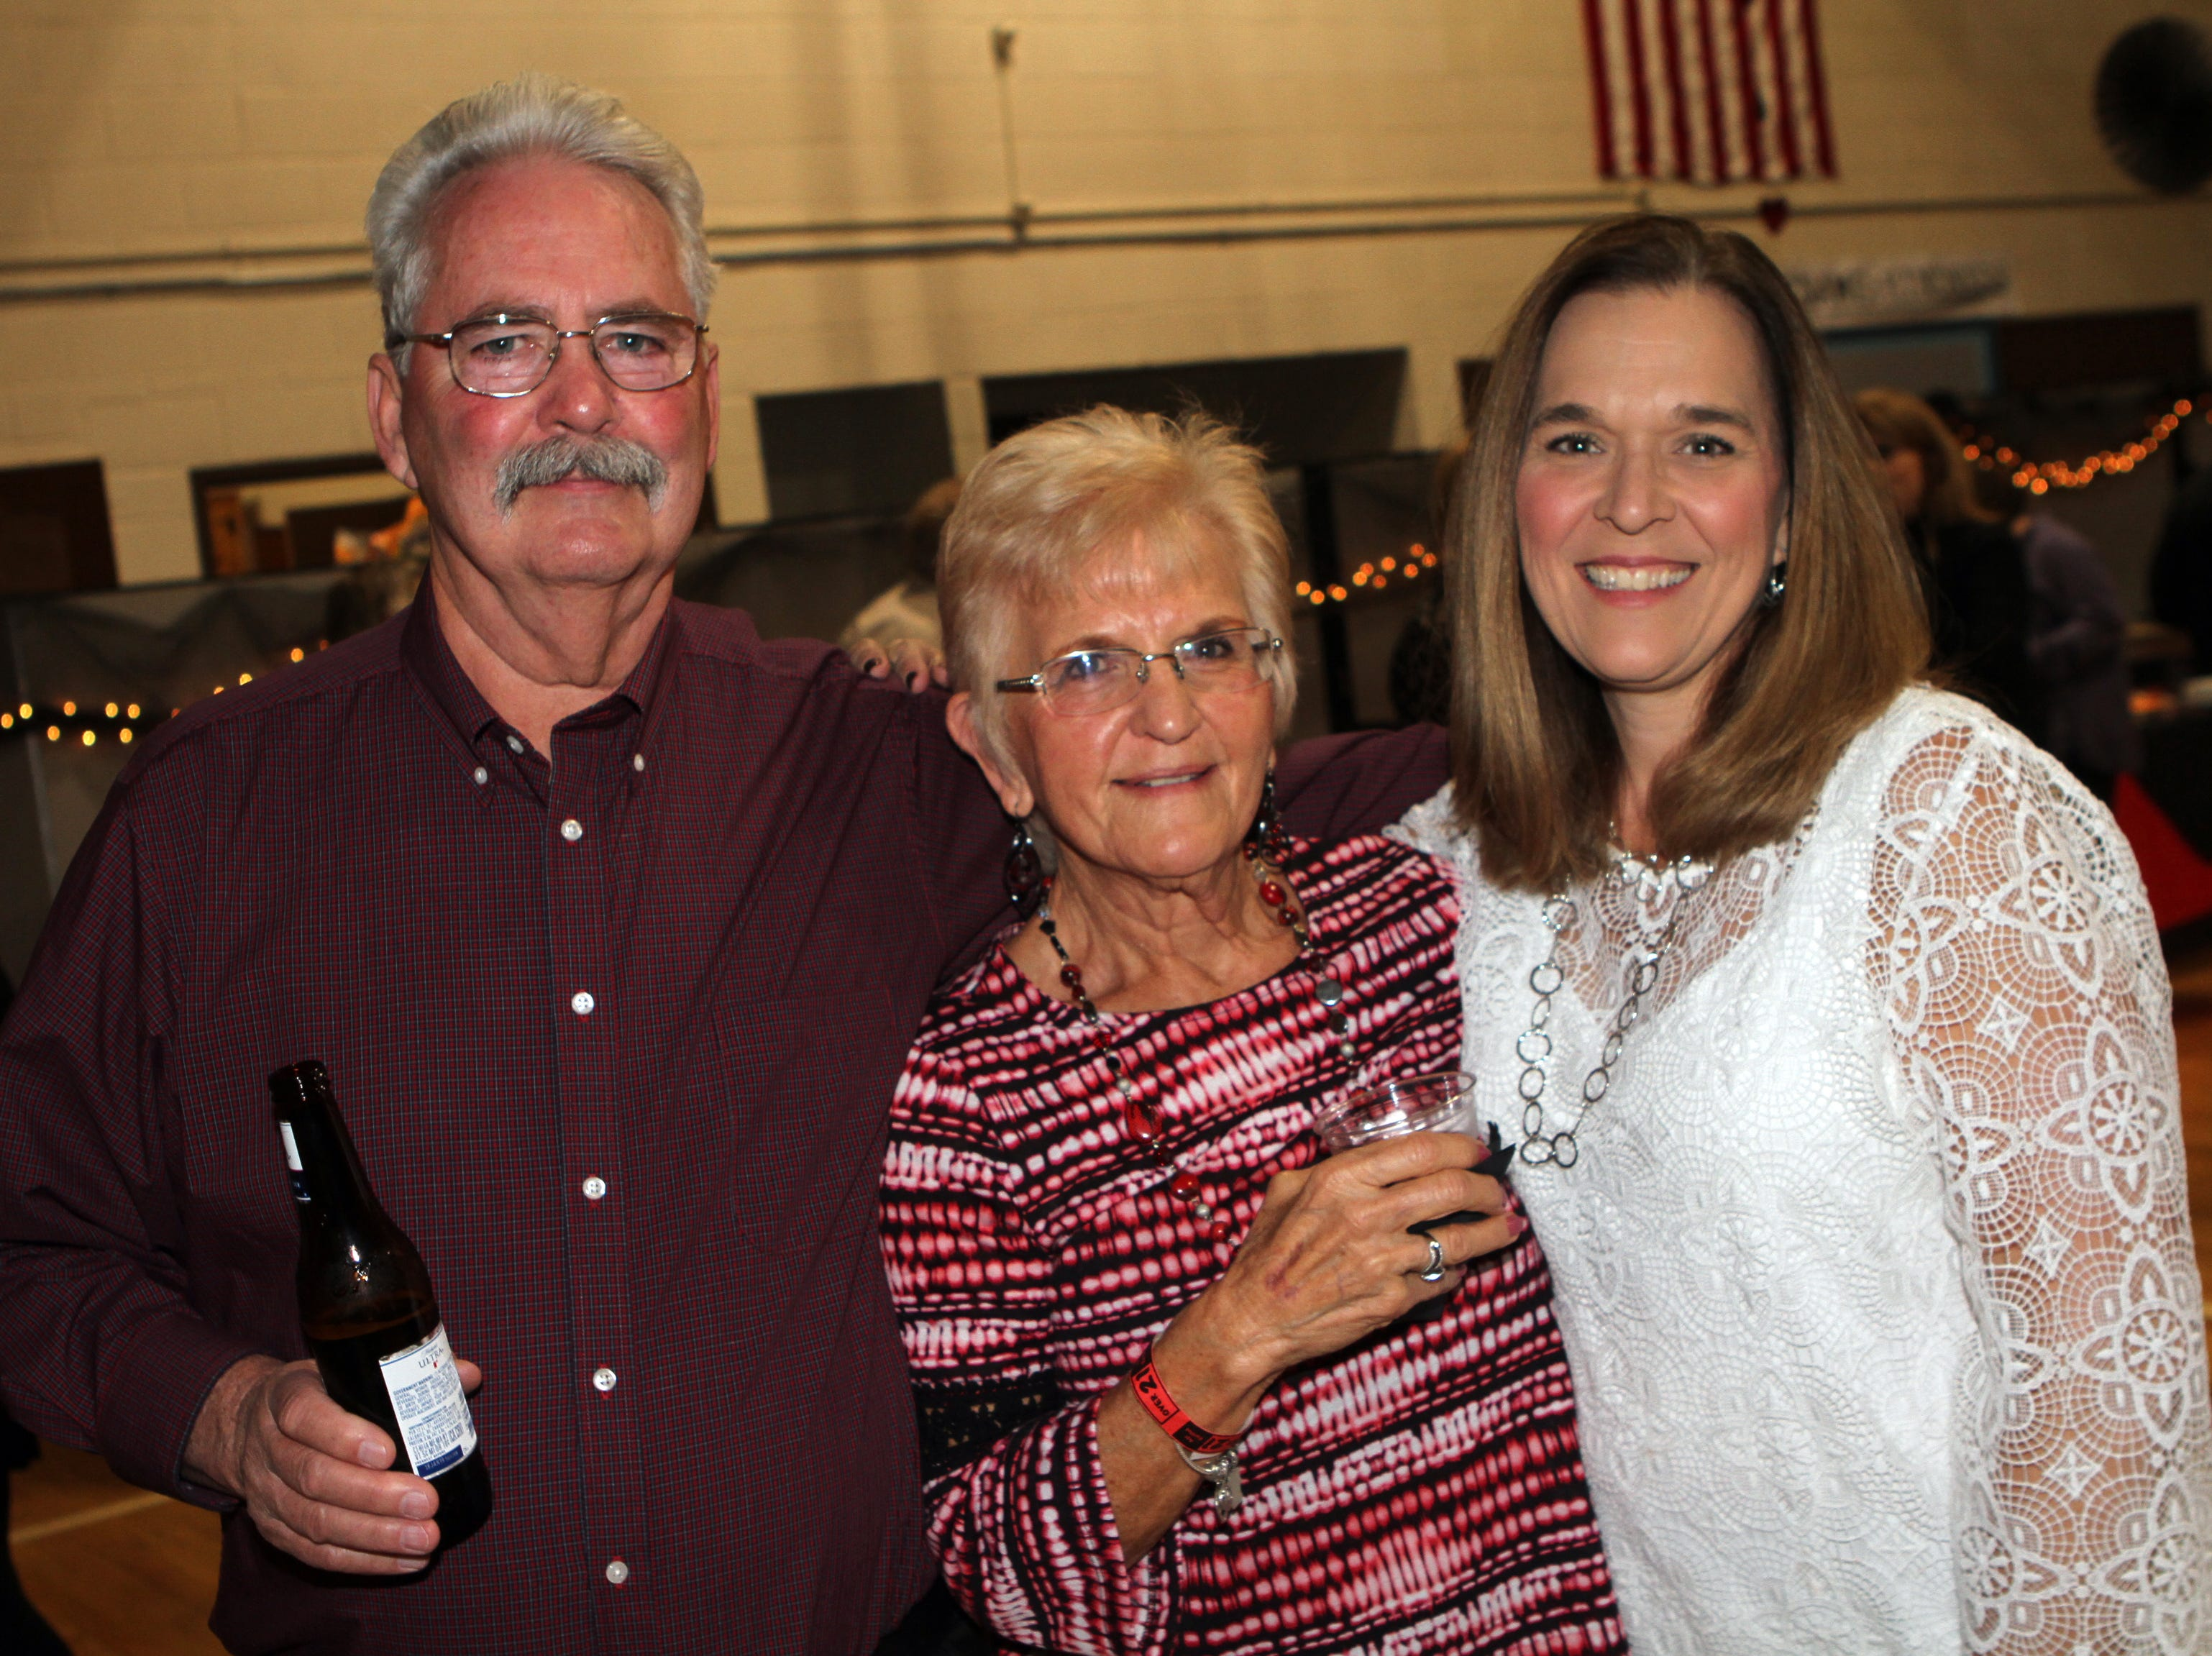 Phllip Anderson, Mary Ann Harris and Lisa Meeks at Casino Night at Immaculate Conception School on Saturday, Nov. 3, 2018.